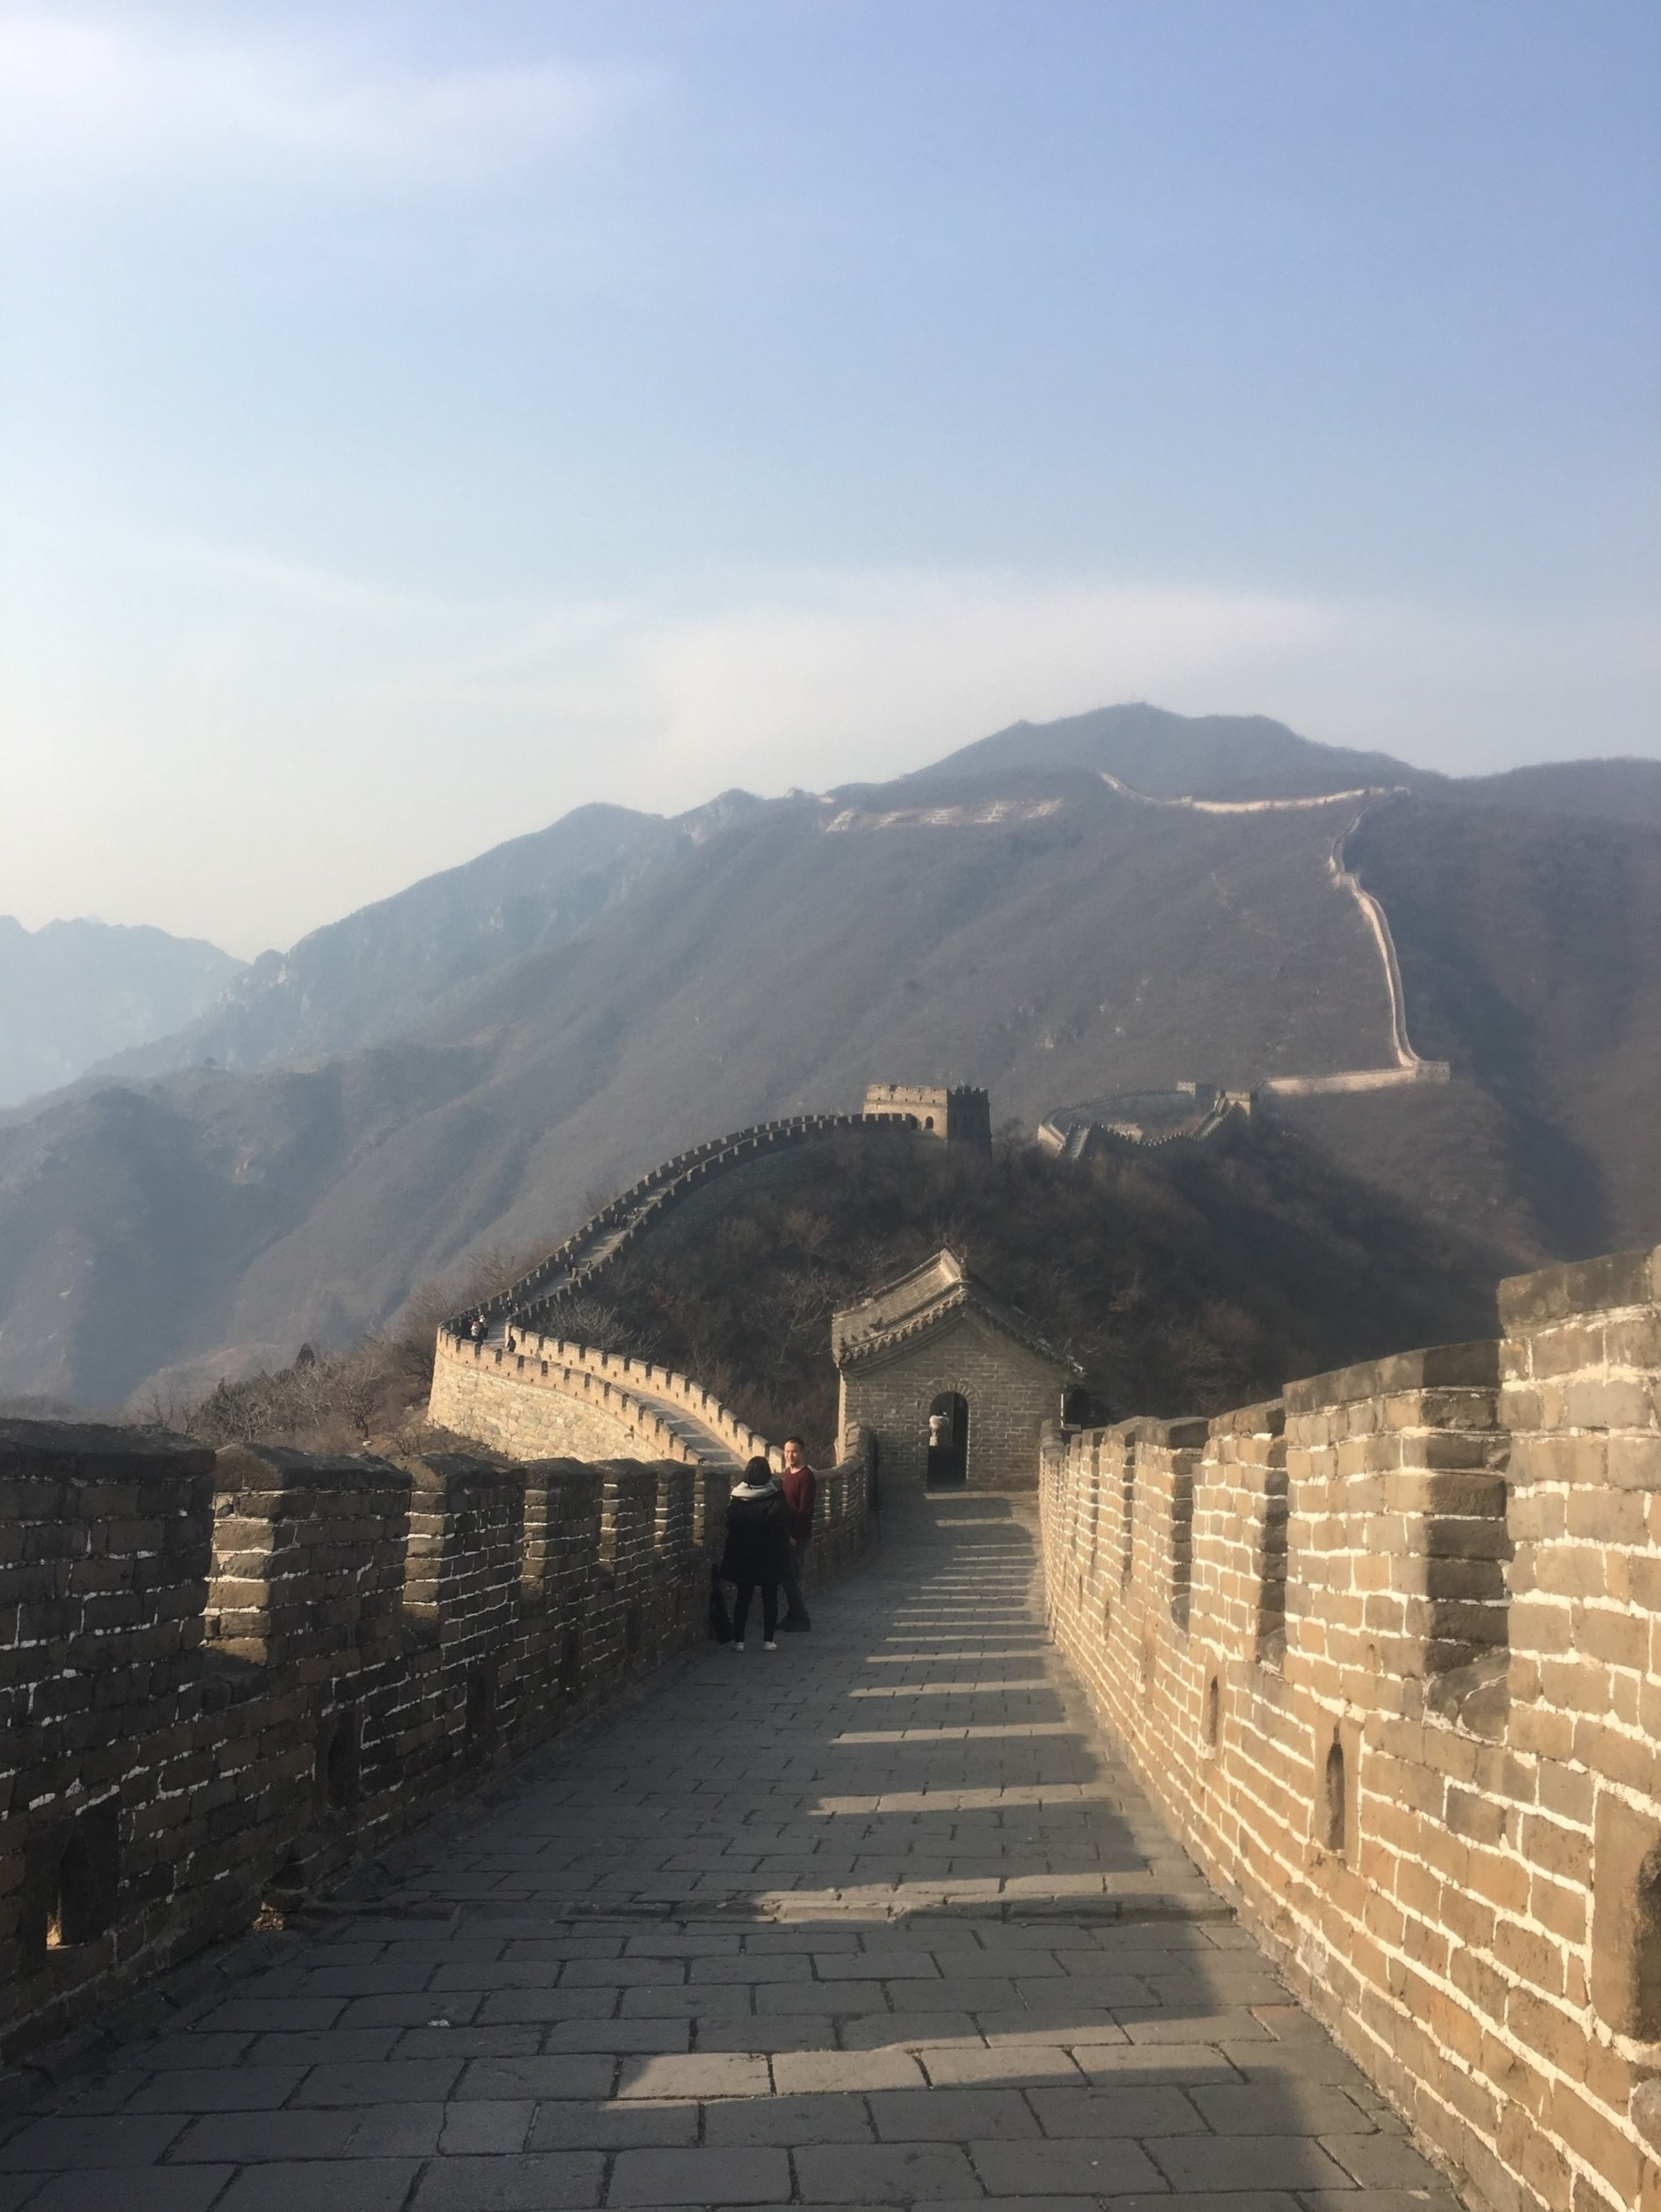 A trip to the Great Wall of China